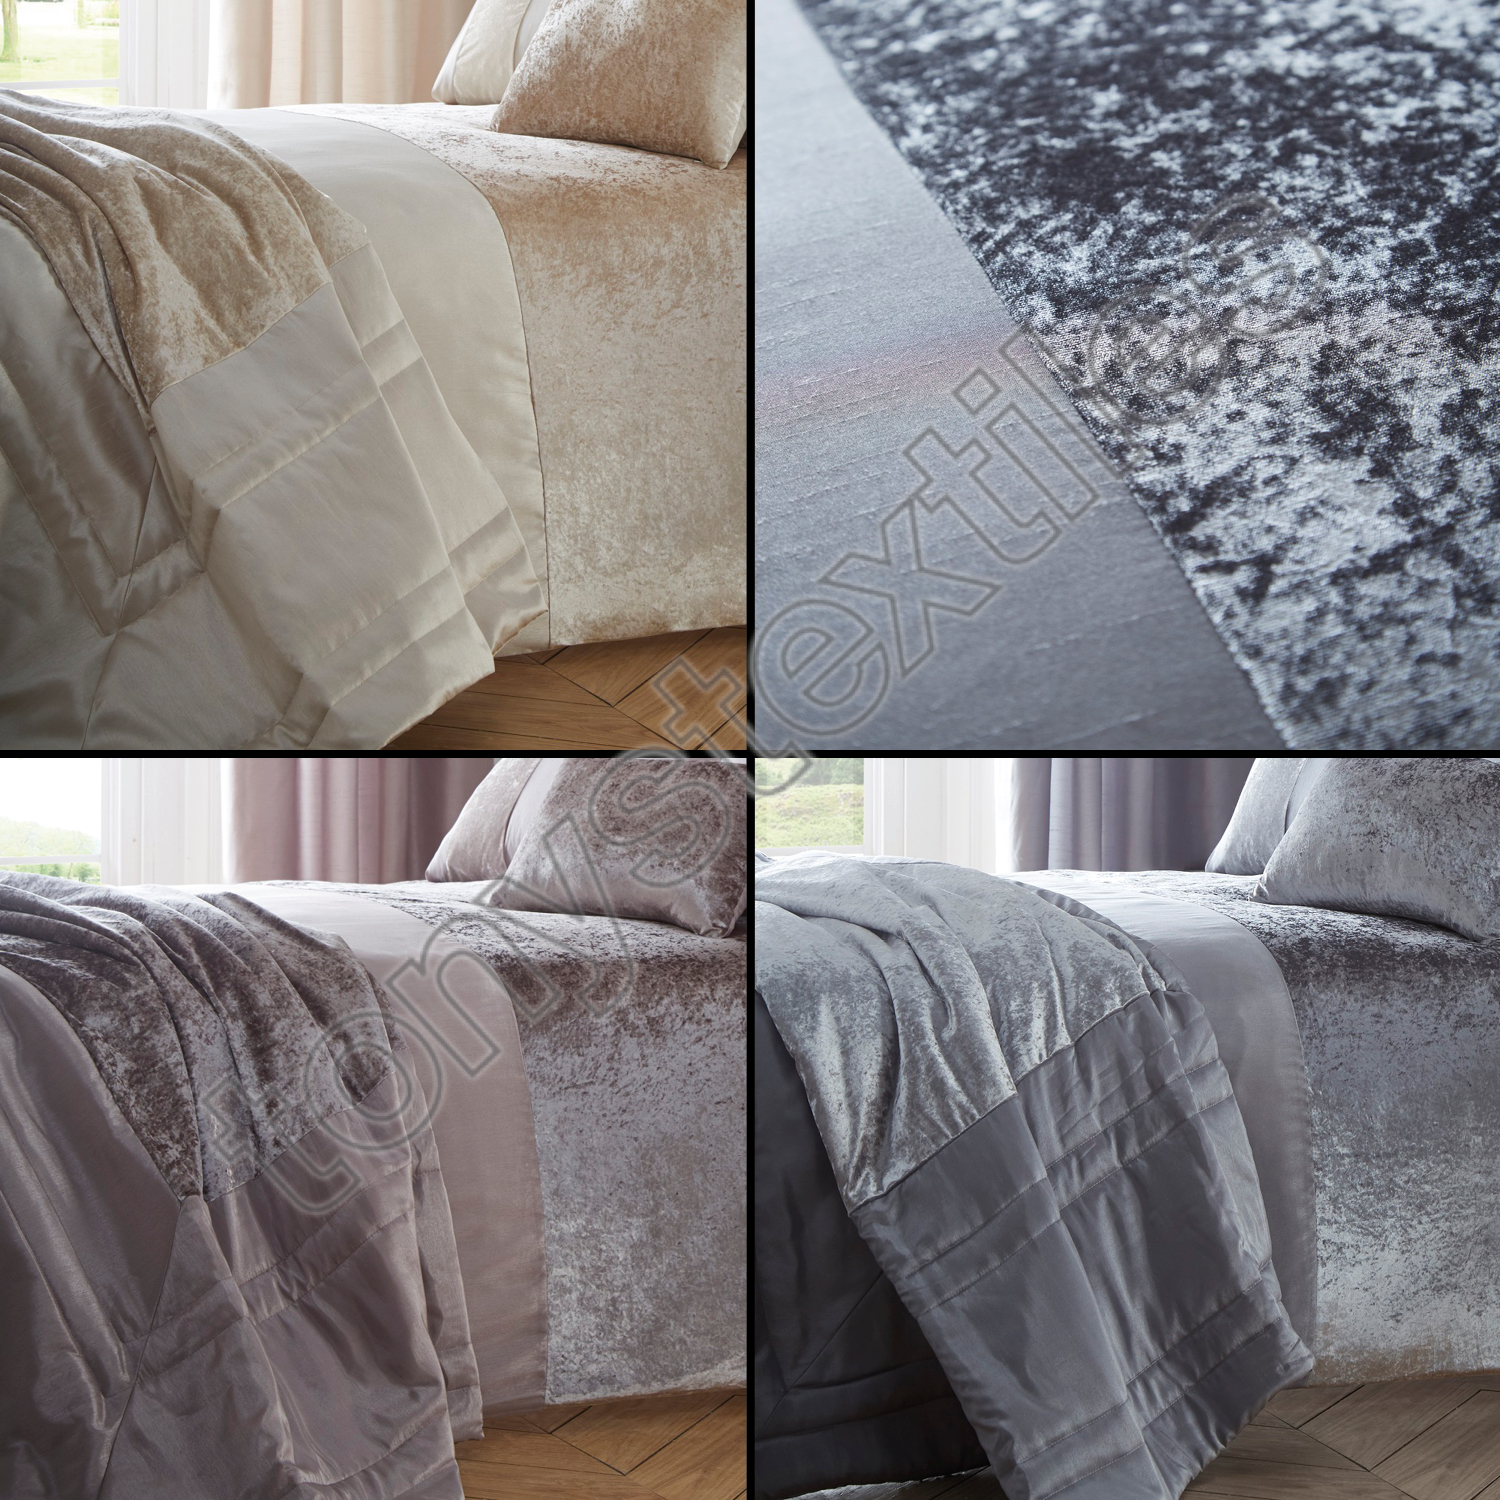 quilted superblackbird bedspread bedding grey coverlet gray velvet bed